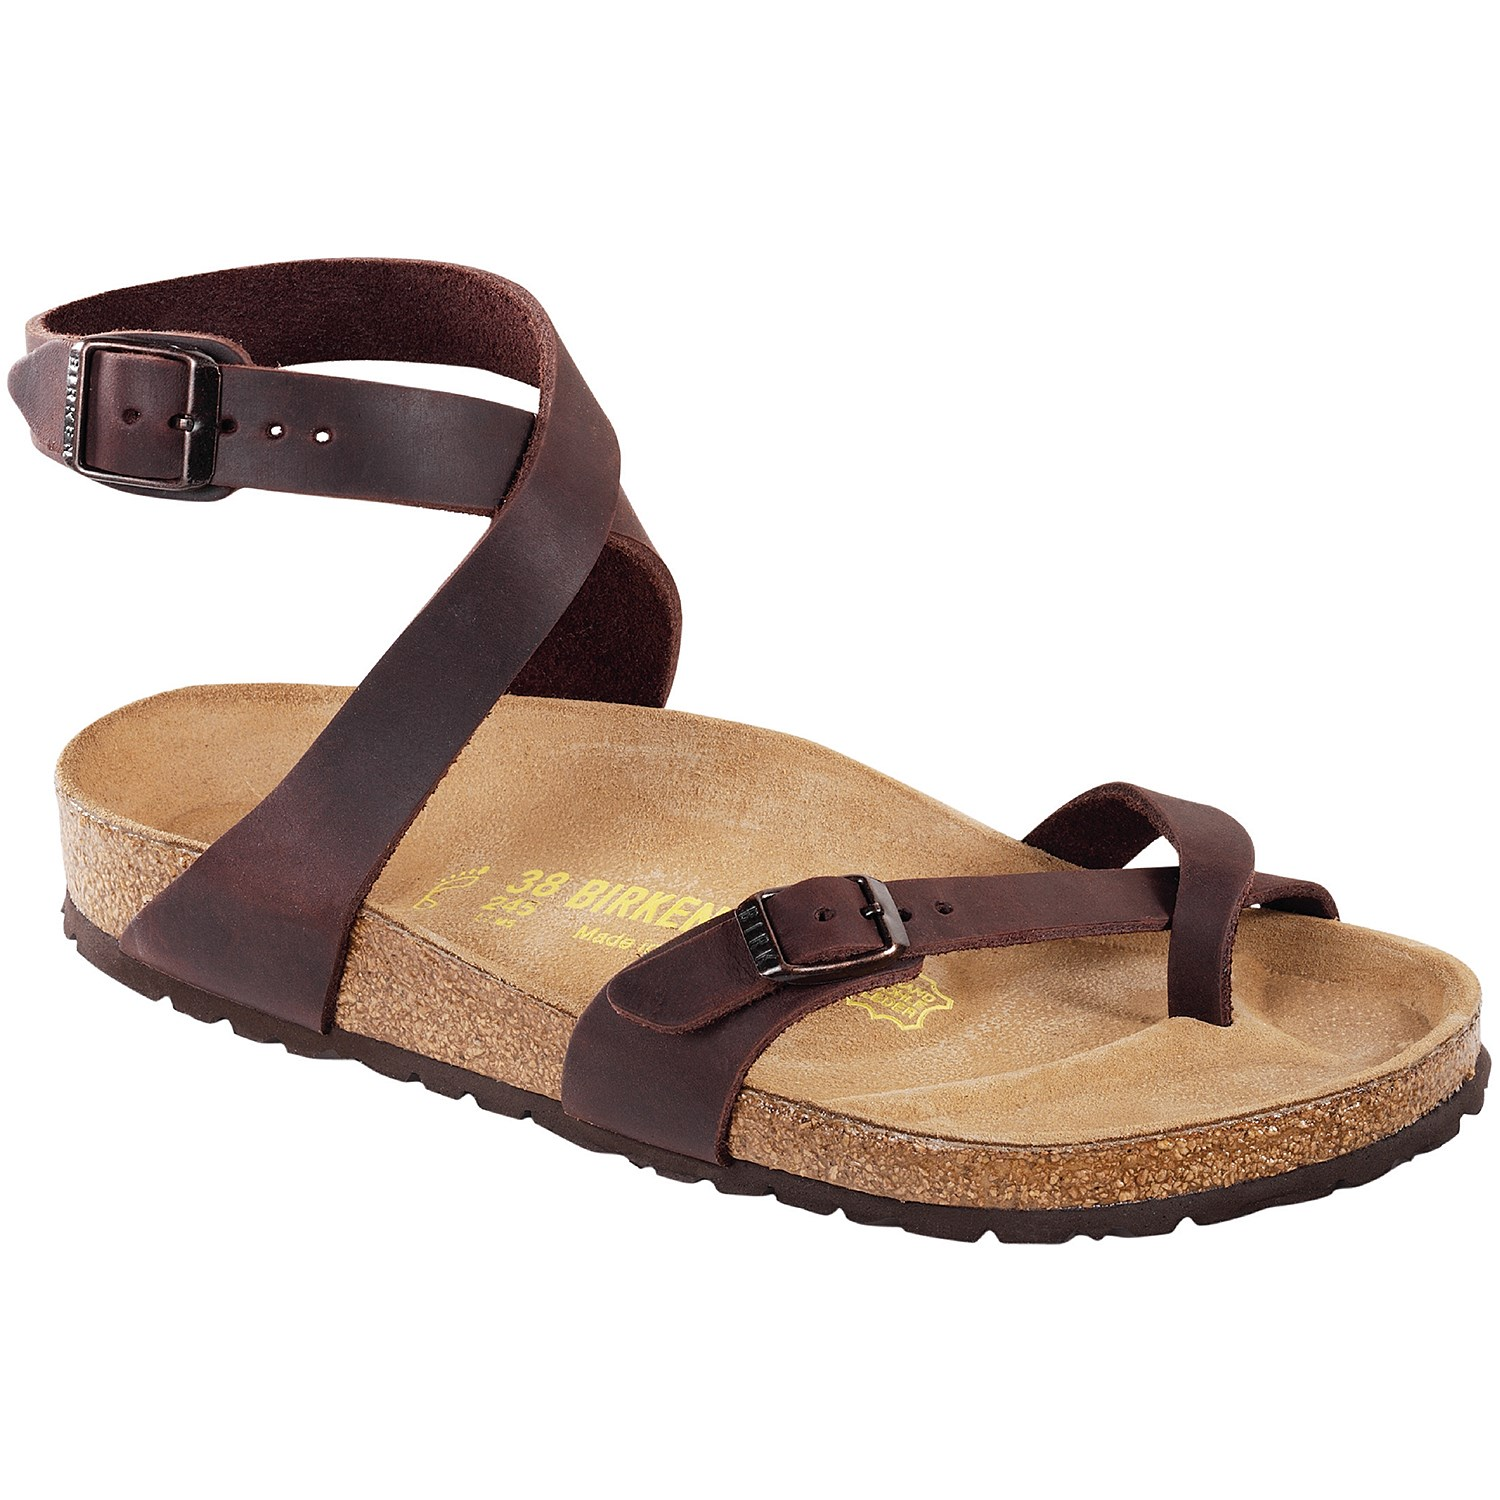 cececd93e89b Birkenstock Yara Oiled Leather Sandals - Women s